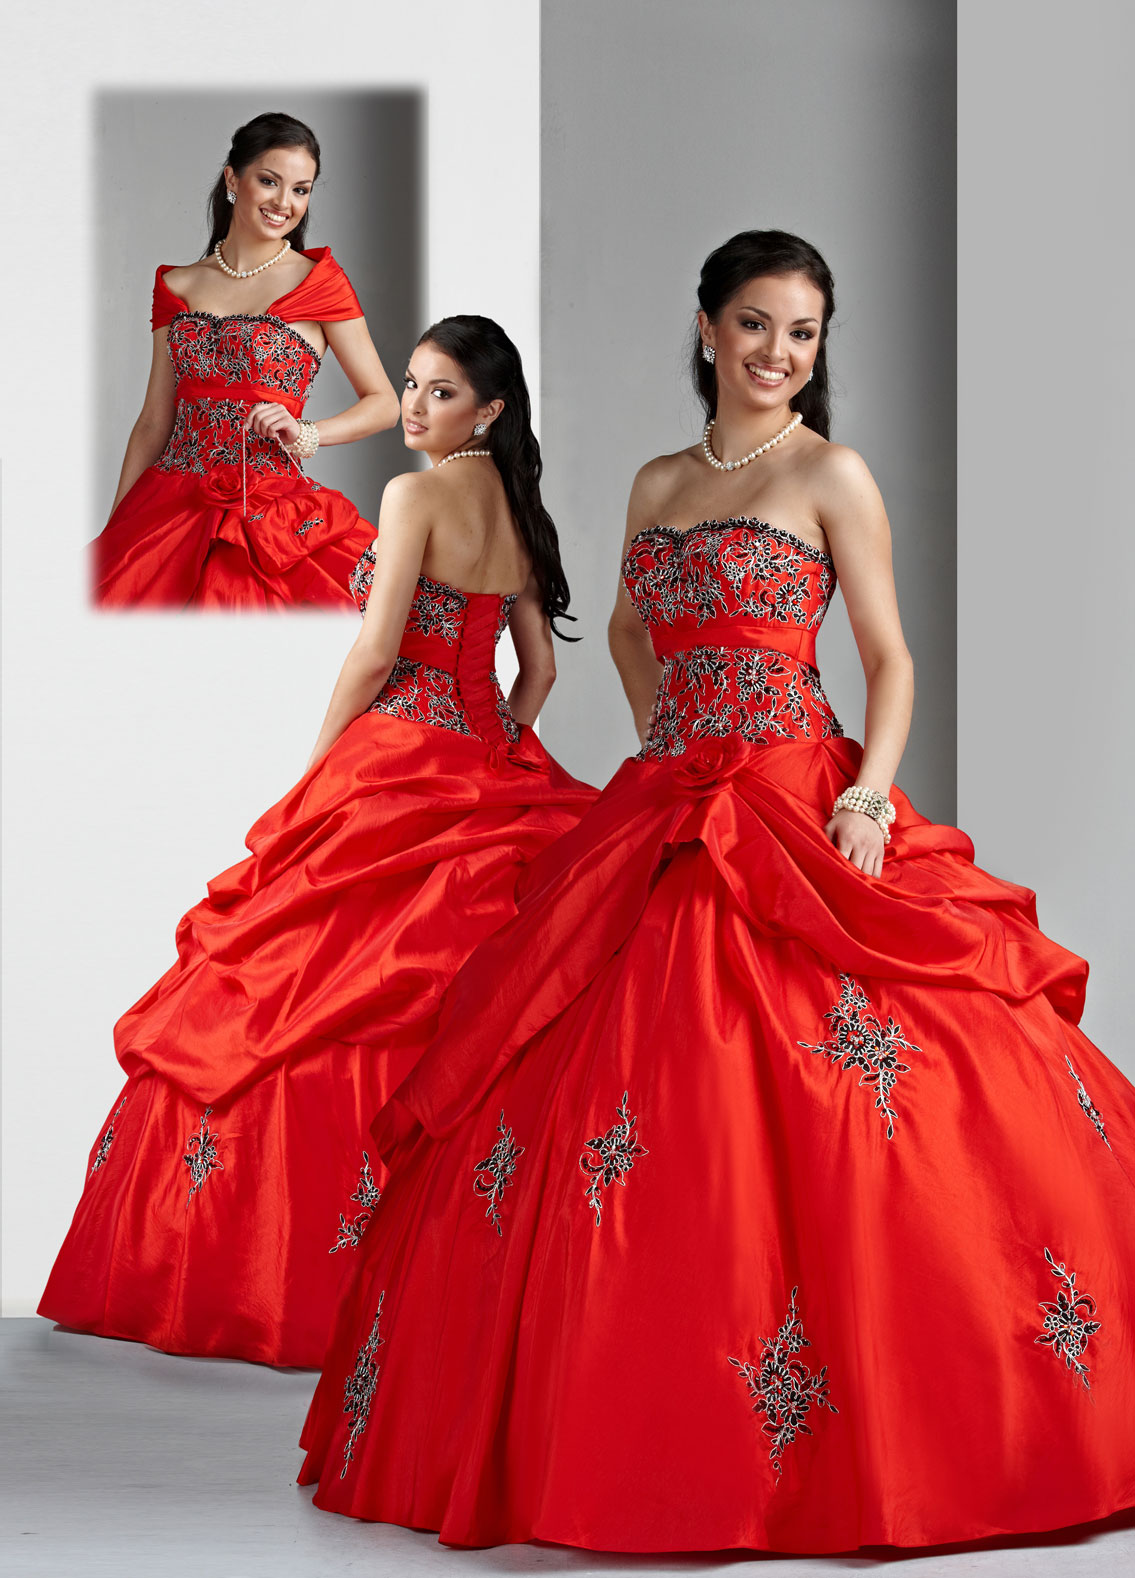 Scarlet Ball Gown Strapless Lace Up Floor Length Black And White Embroidered Quinceanera Dresses